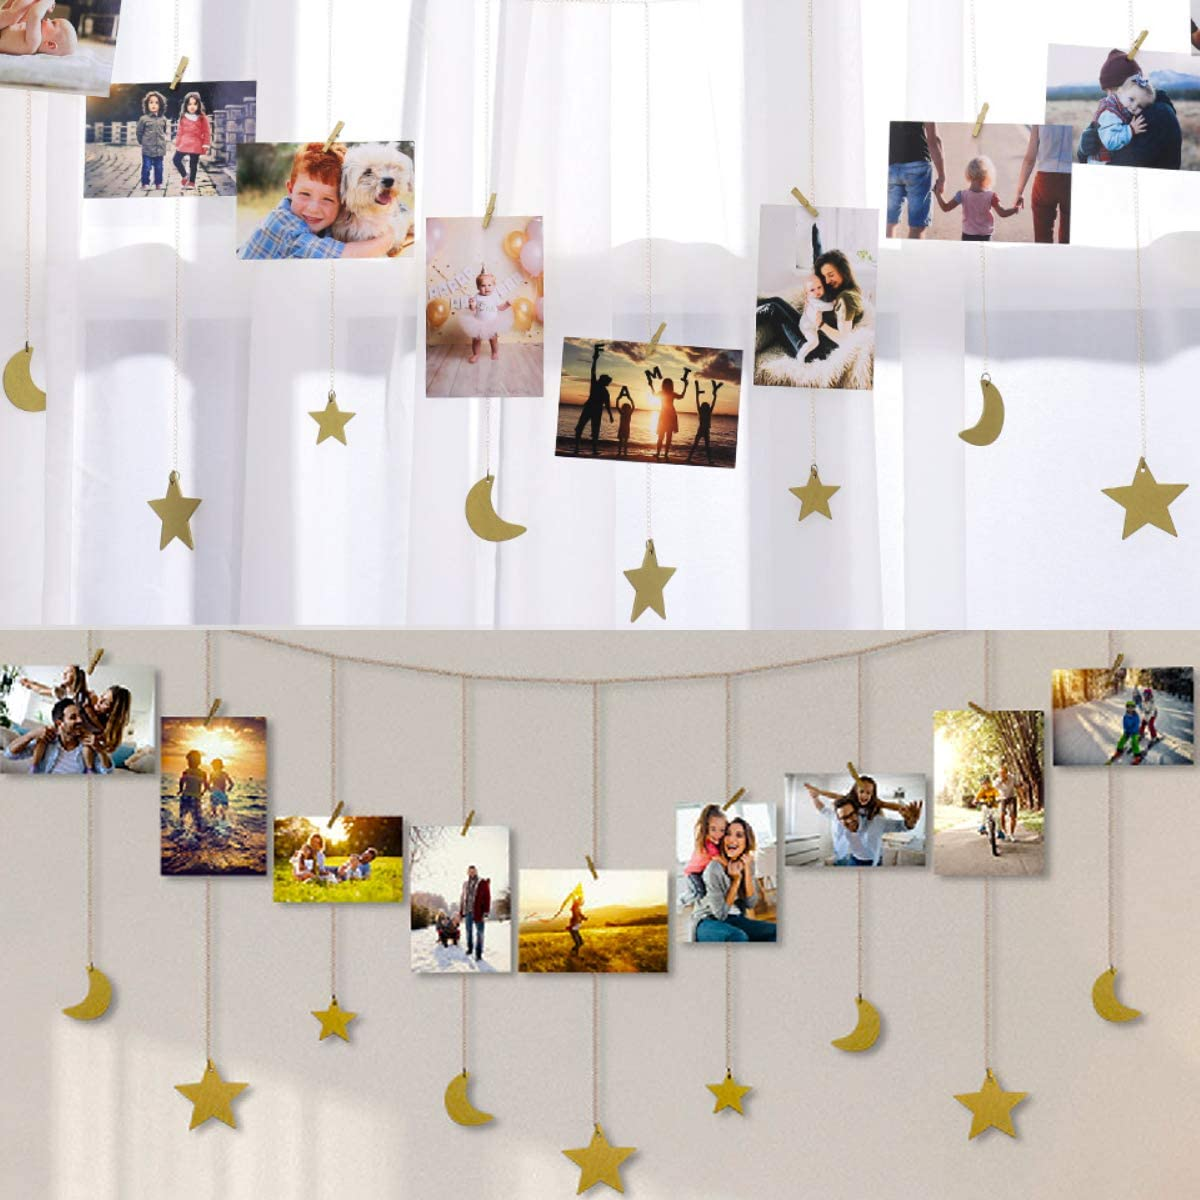 IMIKEYA Hanging Photo Display Wood Star Moon Garland with Chains Picture Frame Collage with 30 Wood Clips Photo Wall Display for Home Office Nursery Room Dorm Living Room Wall Art Decoration,Gold